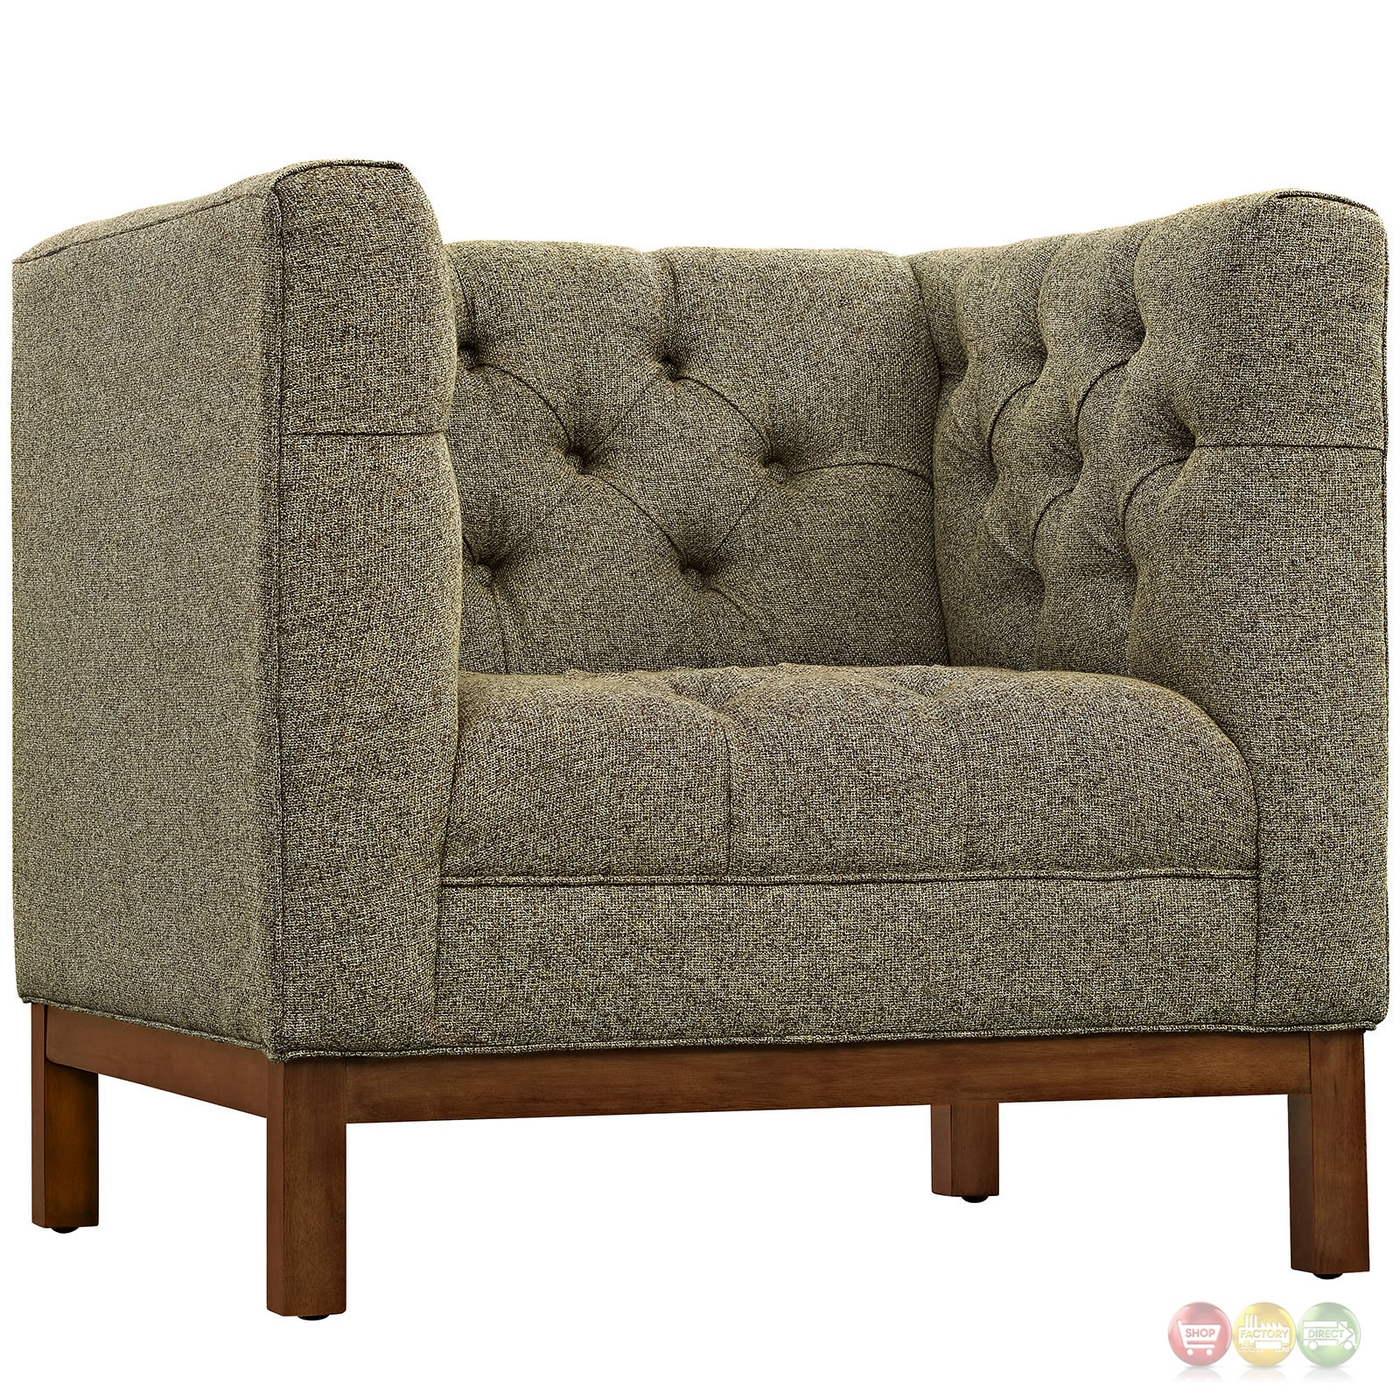 panache sofa set serta bed reviews mid century modern 2pc upholstered and armchair